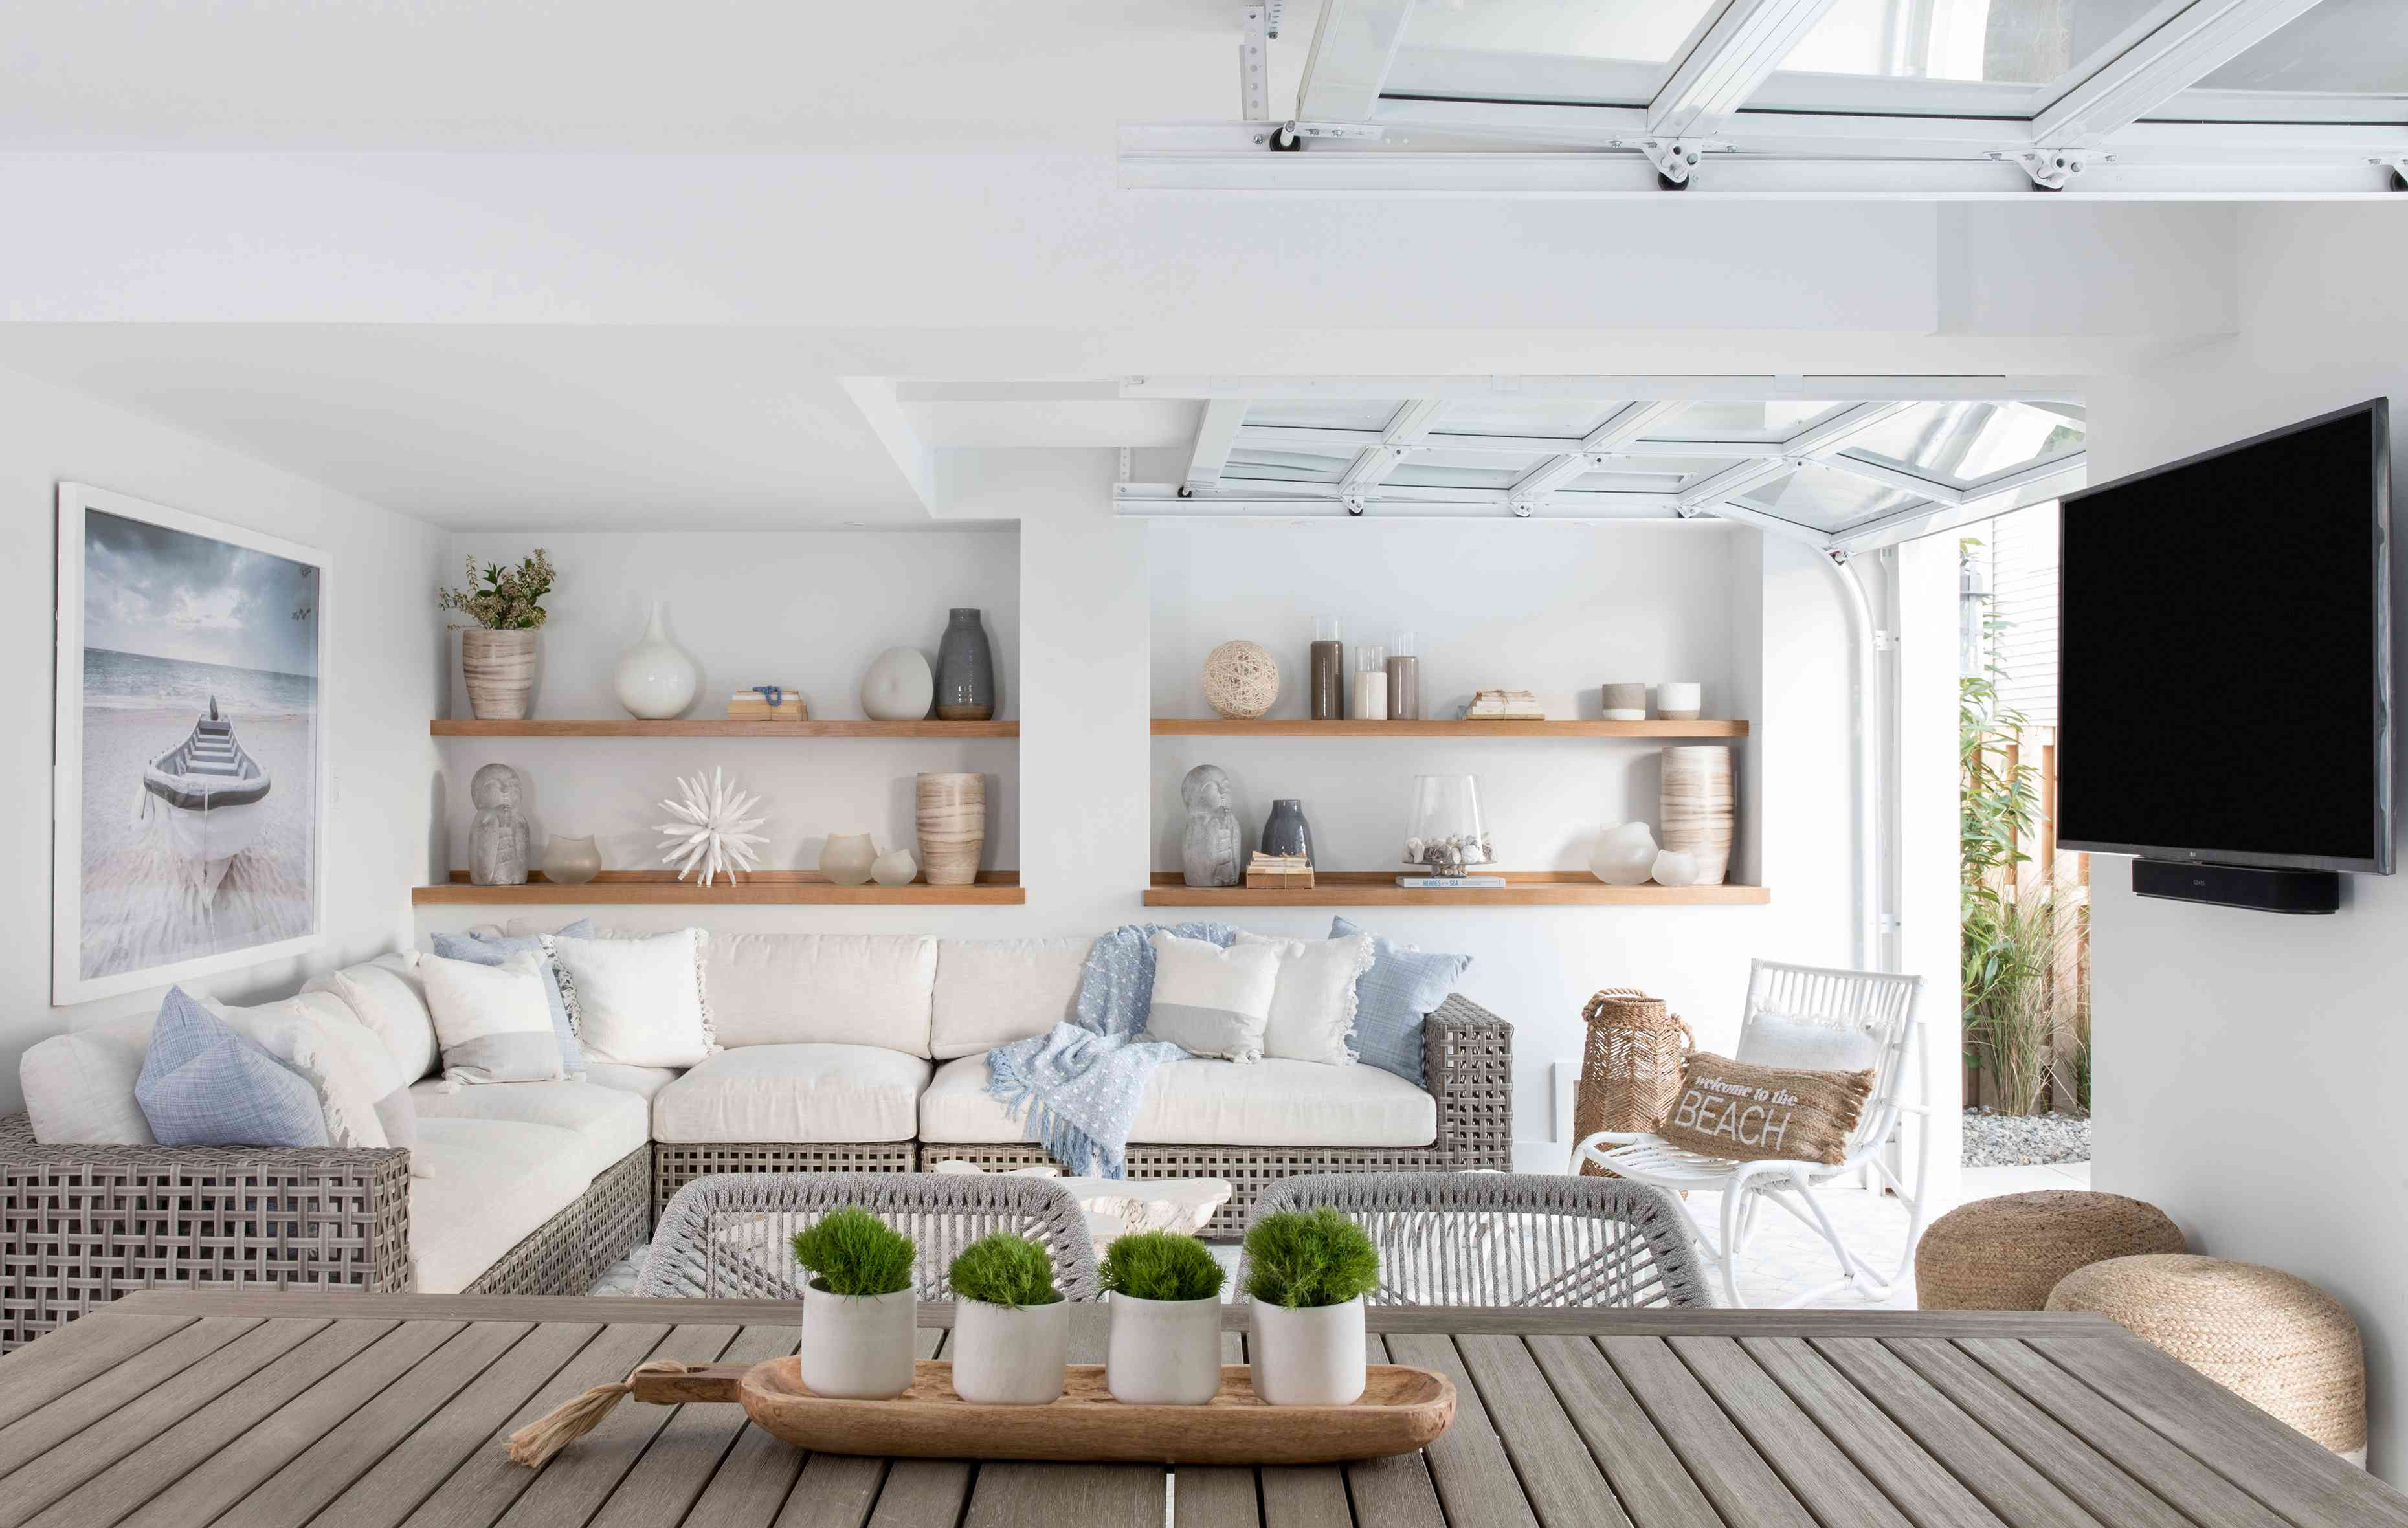 Garage doors open up a ground-floor living area to the lanai at the Long Beach Island home of Karen B. Wolfe